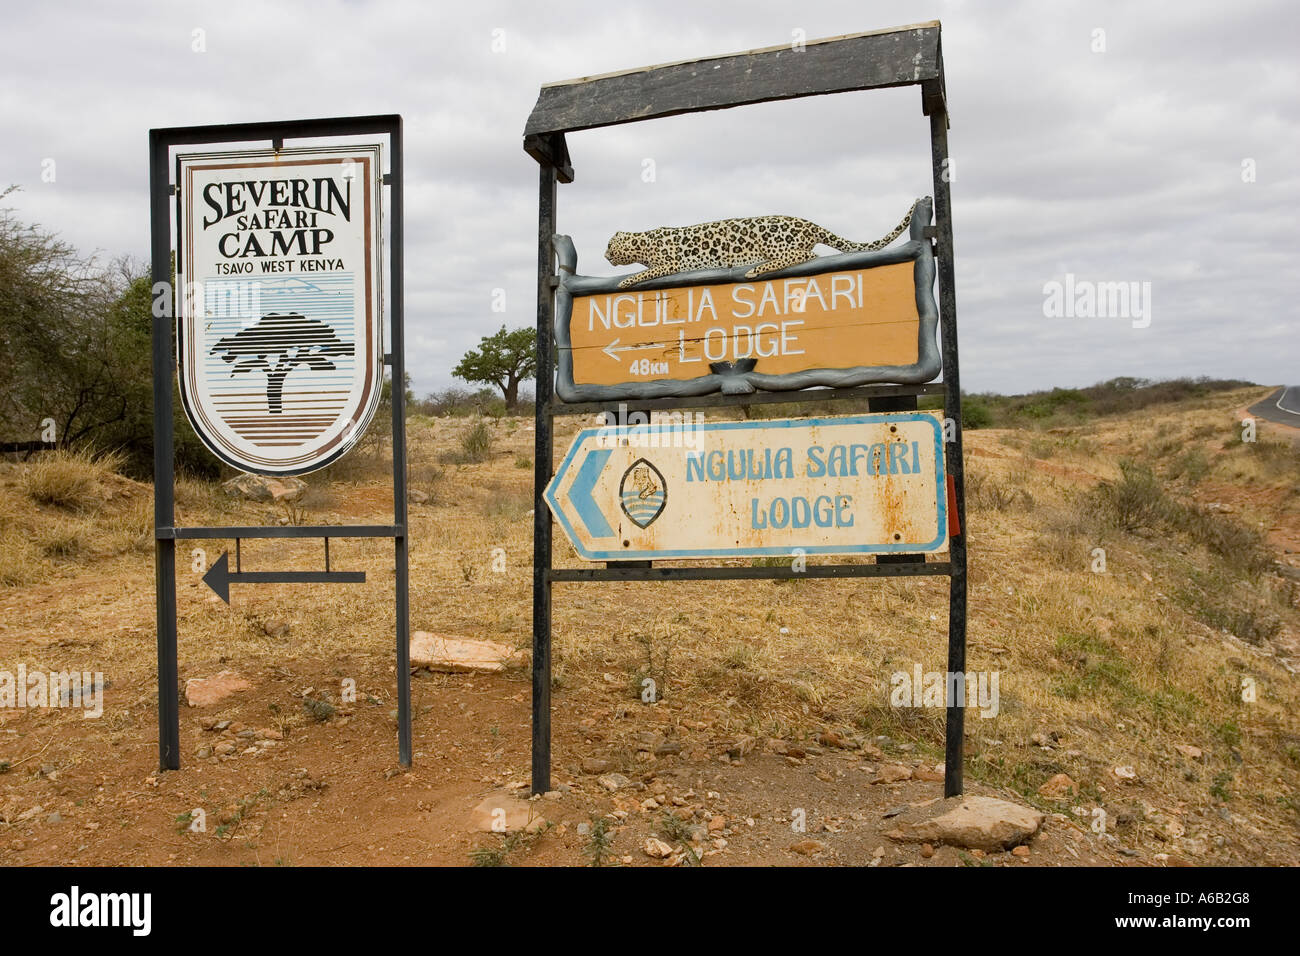 Tour lodge signboards at entrance gate to Tsavo National Park West Kenya East Africa - Stock Image